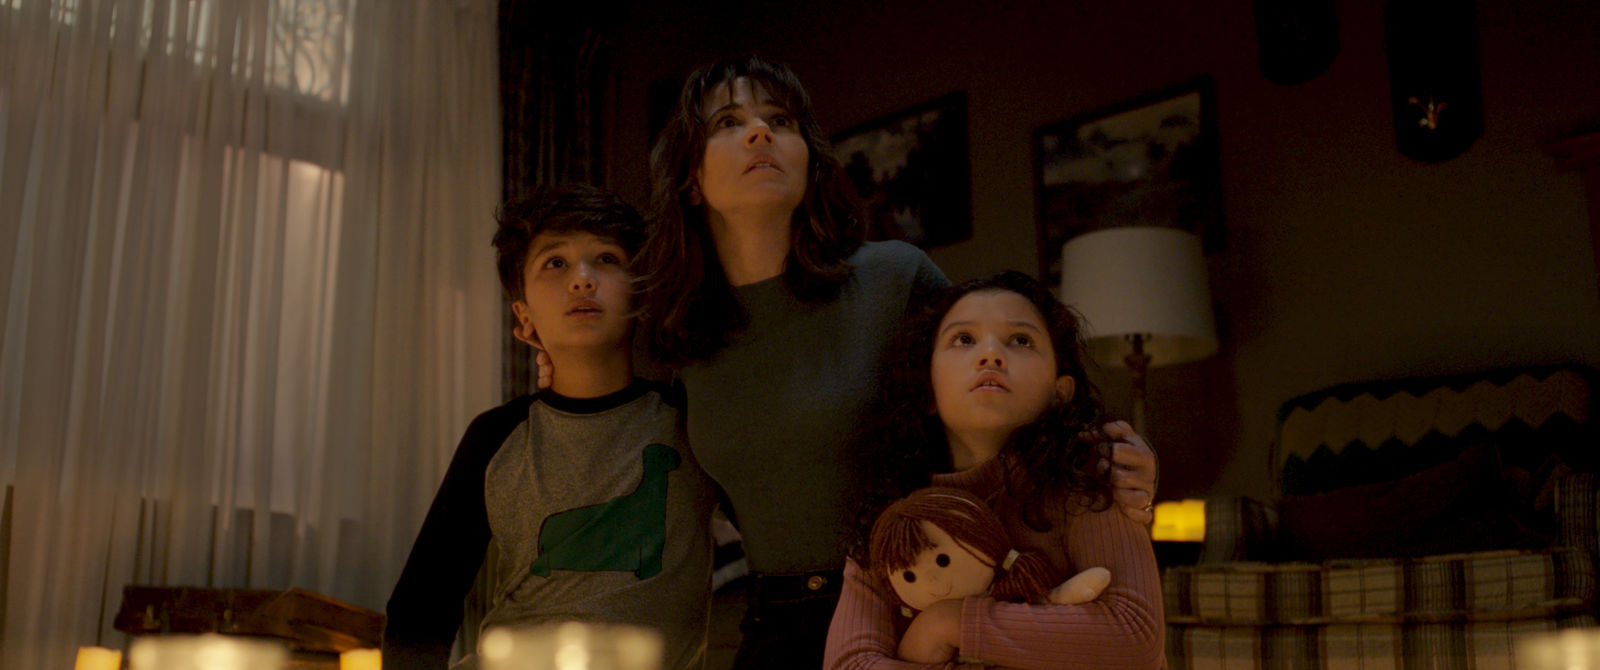 "(L-R) ROMAN CHRISTOU as Chris and LINDA CARDELLINI as Anna Tate-Garcia and JAYNEE LYNNE KINCHEN as Samantha in New Line Cinema's horror film ""THE CURSE OF LA LLORONA,"" a Warner Bros. Pictures release. (Photo: Warner Bros.)"